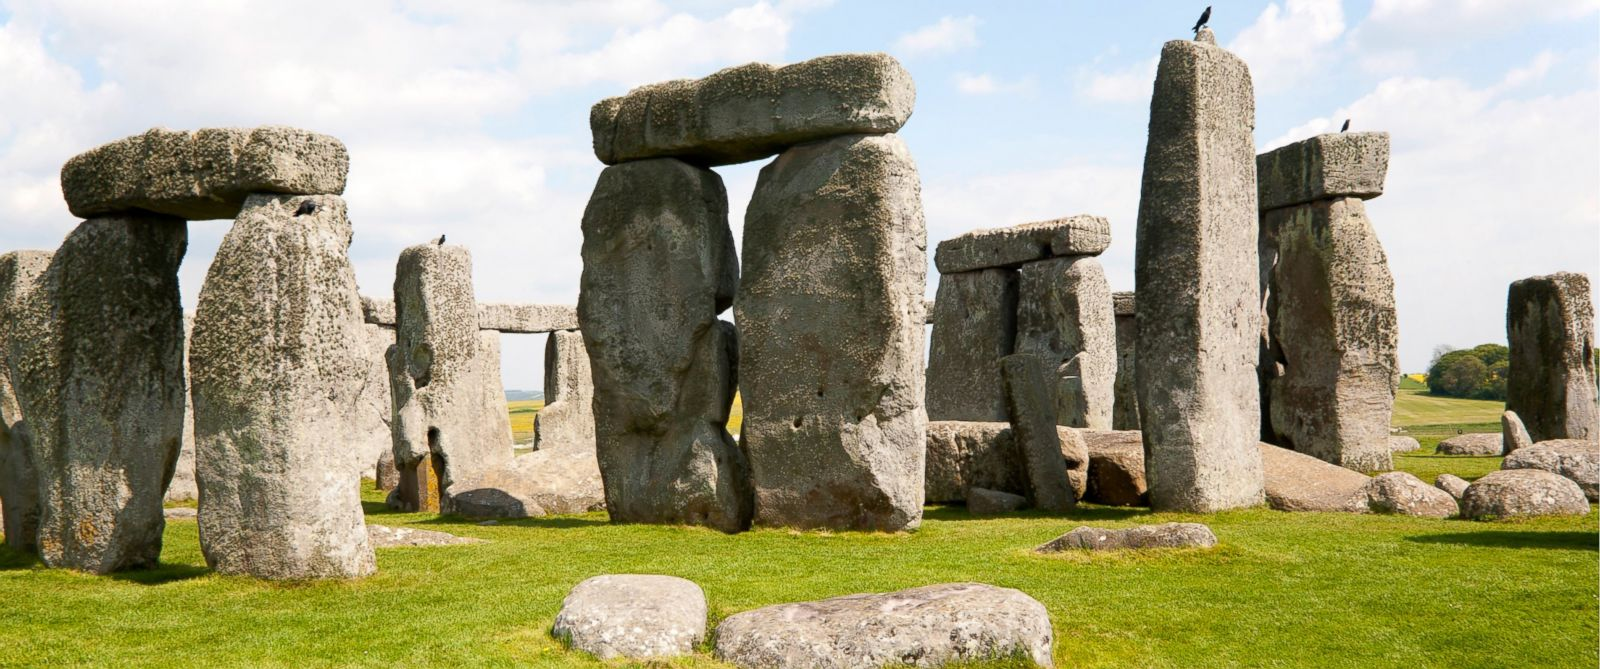 PHOTO: The World Heritage Neolithic site of standing stones at Stonehenge, Amesbury, Wiltshire, England.